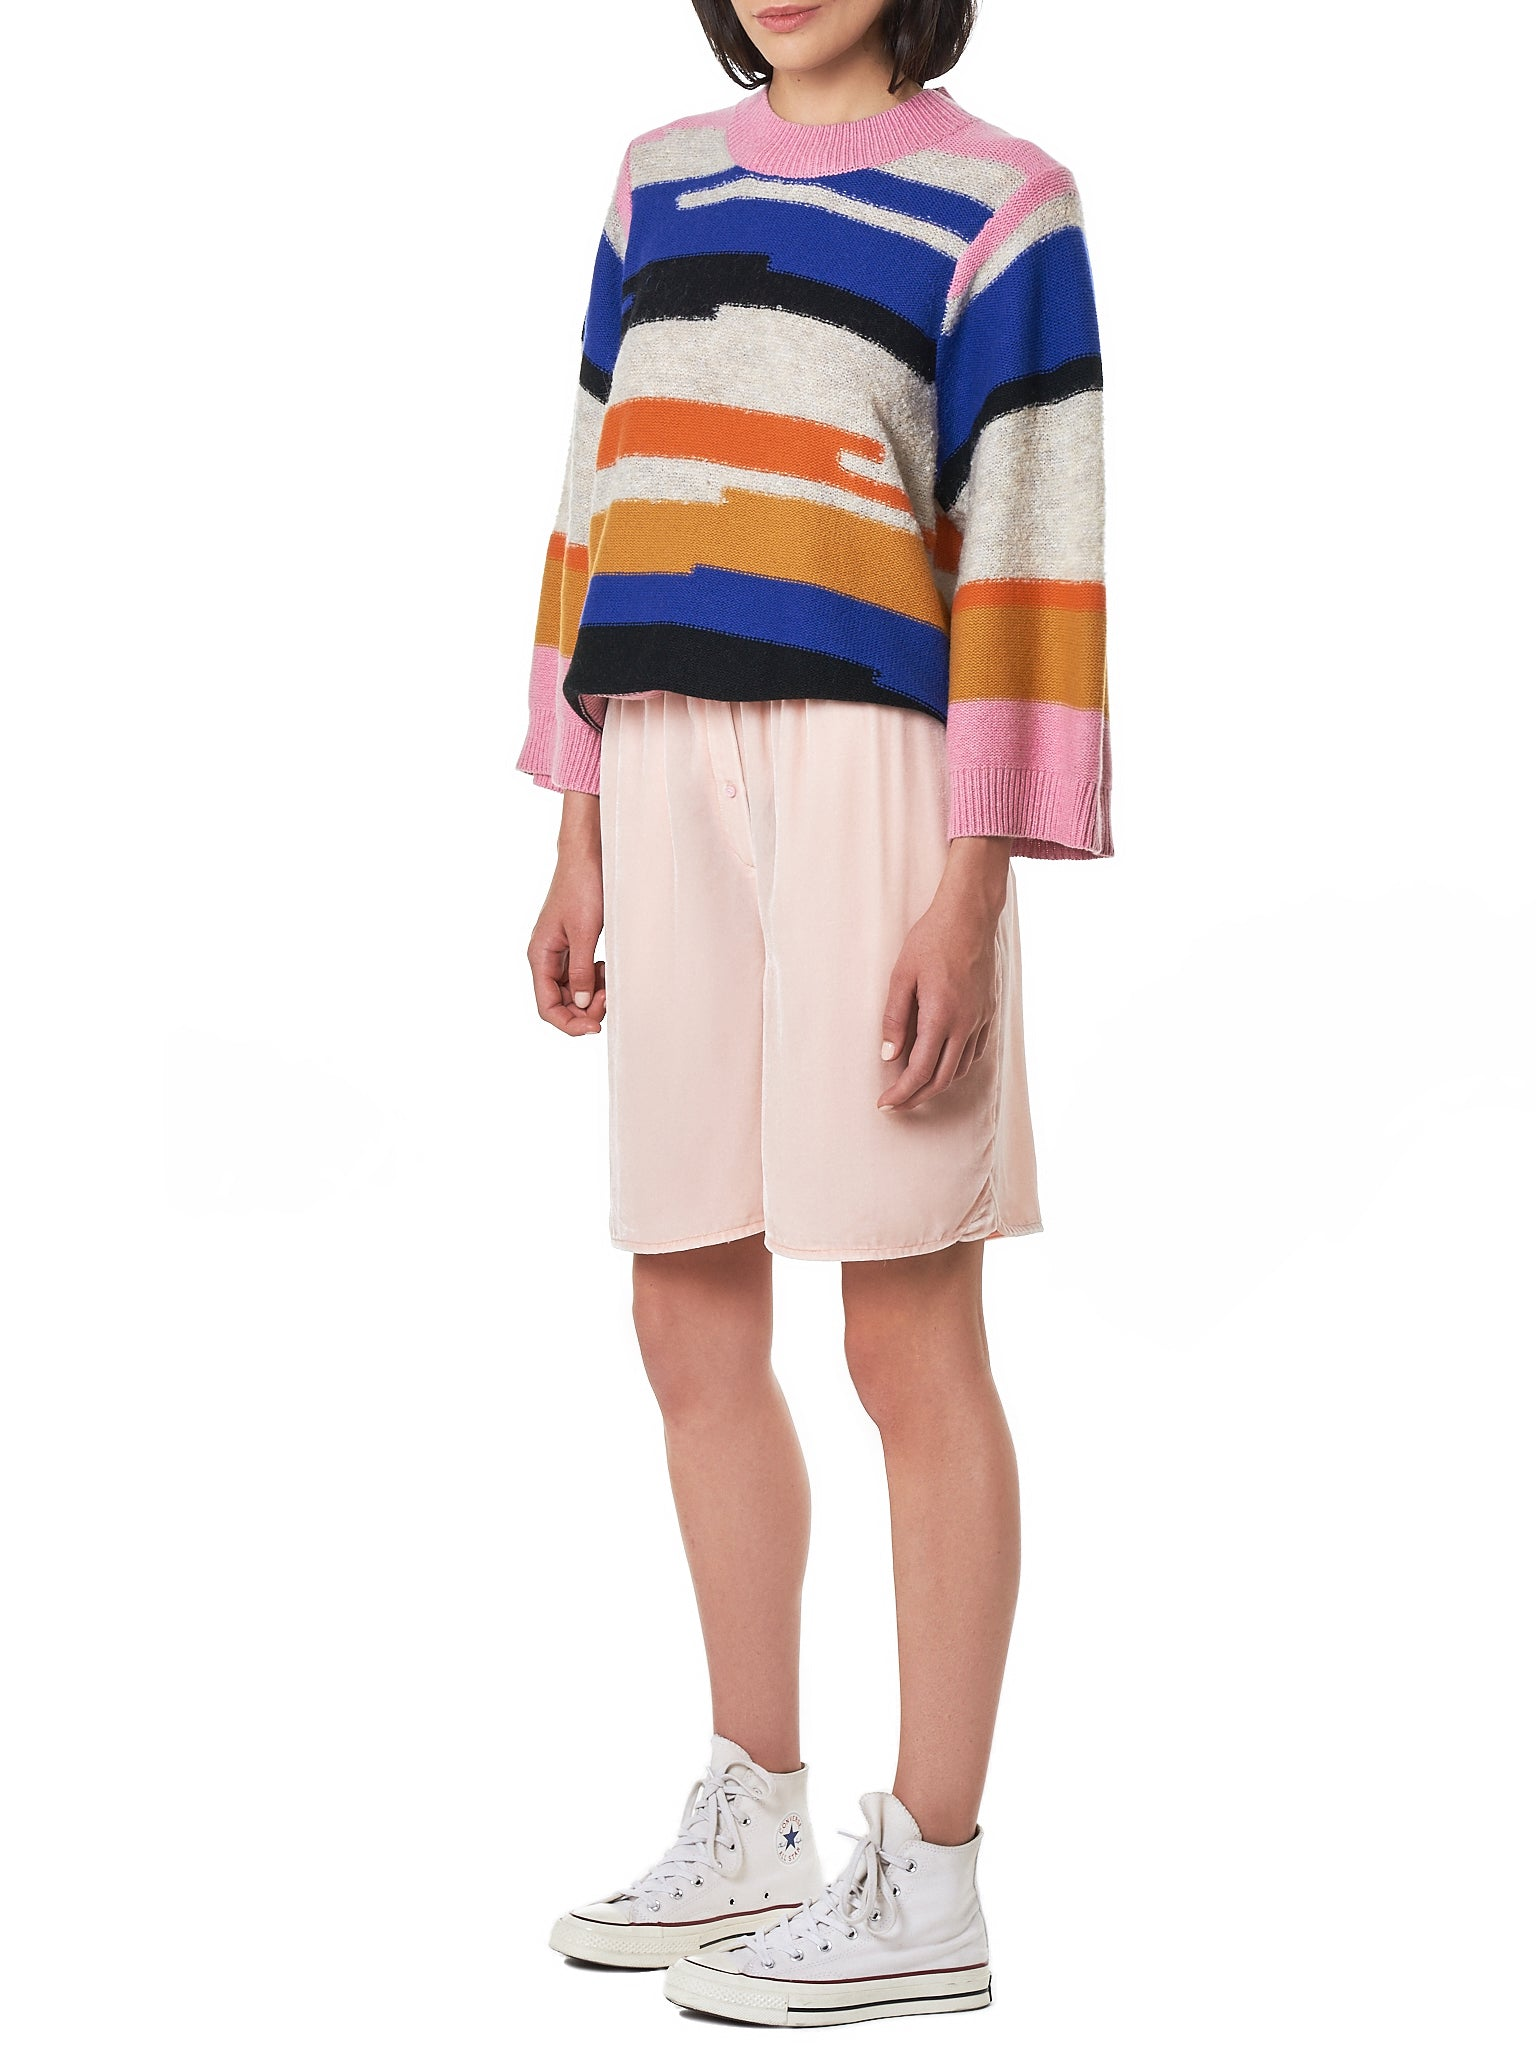 Cecilie Bahnsen Pink Shorts - Hlorenzo Style